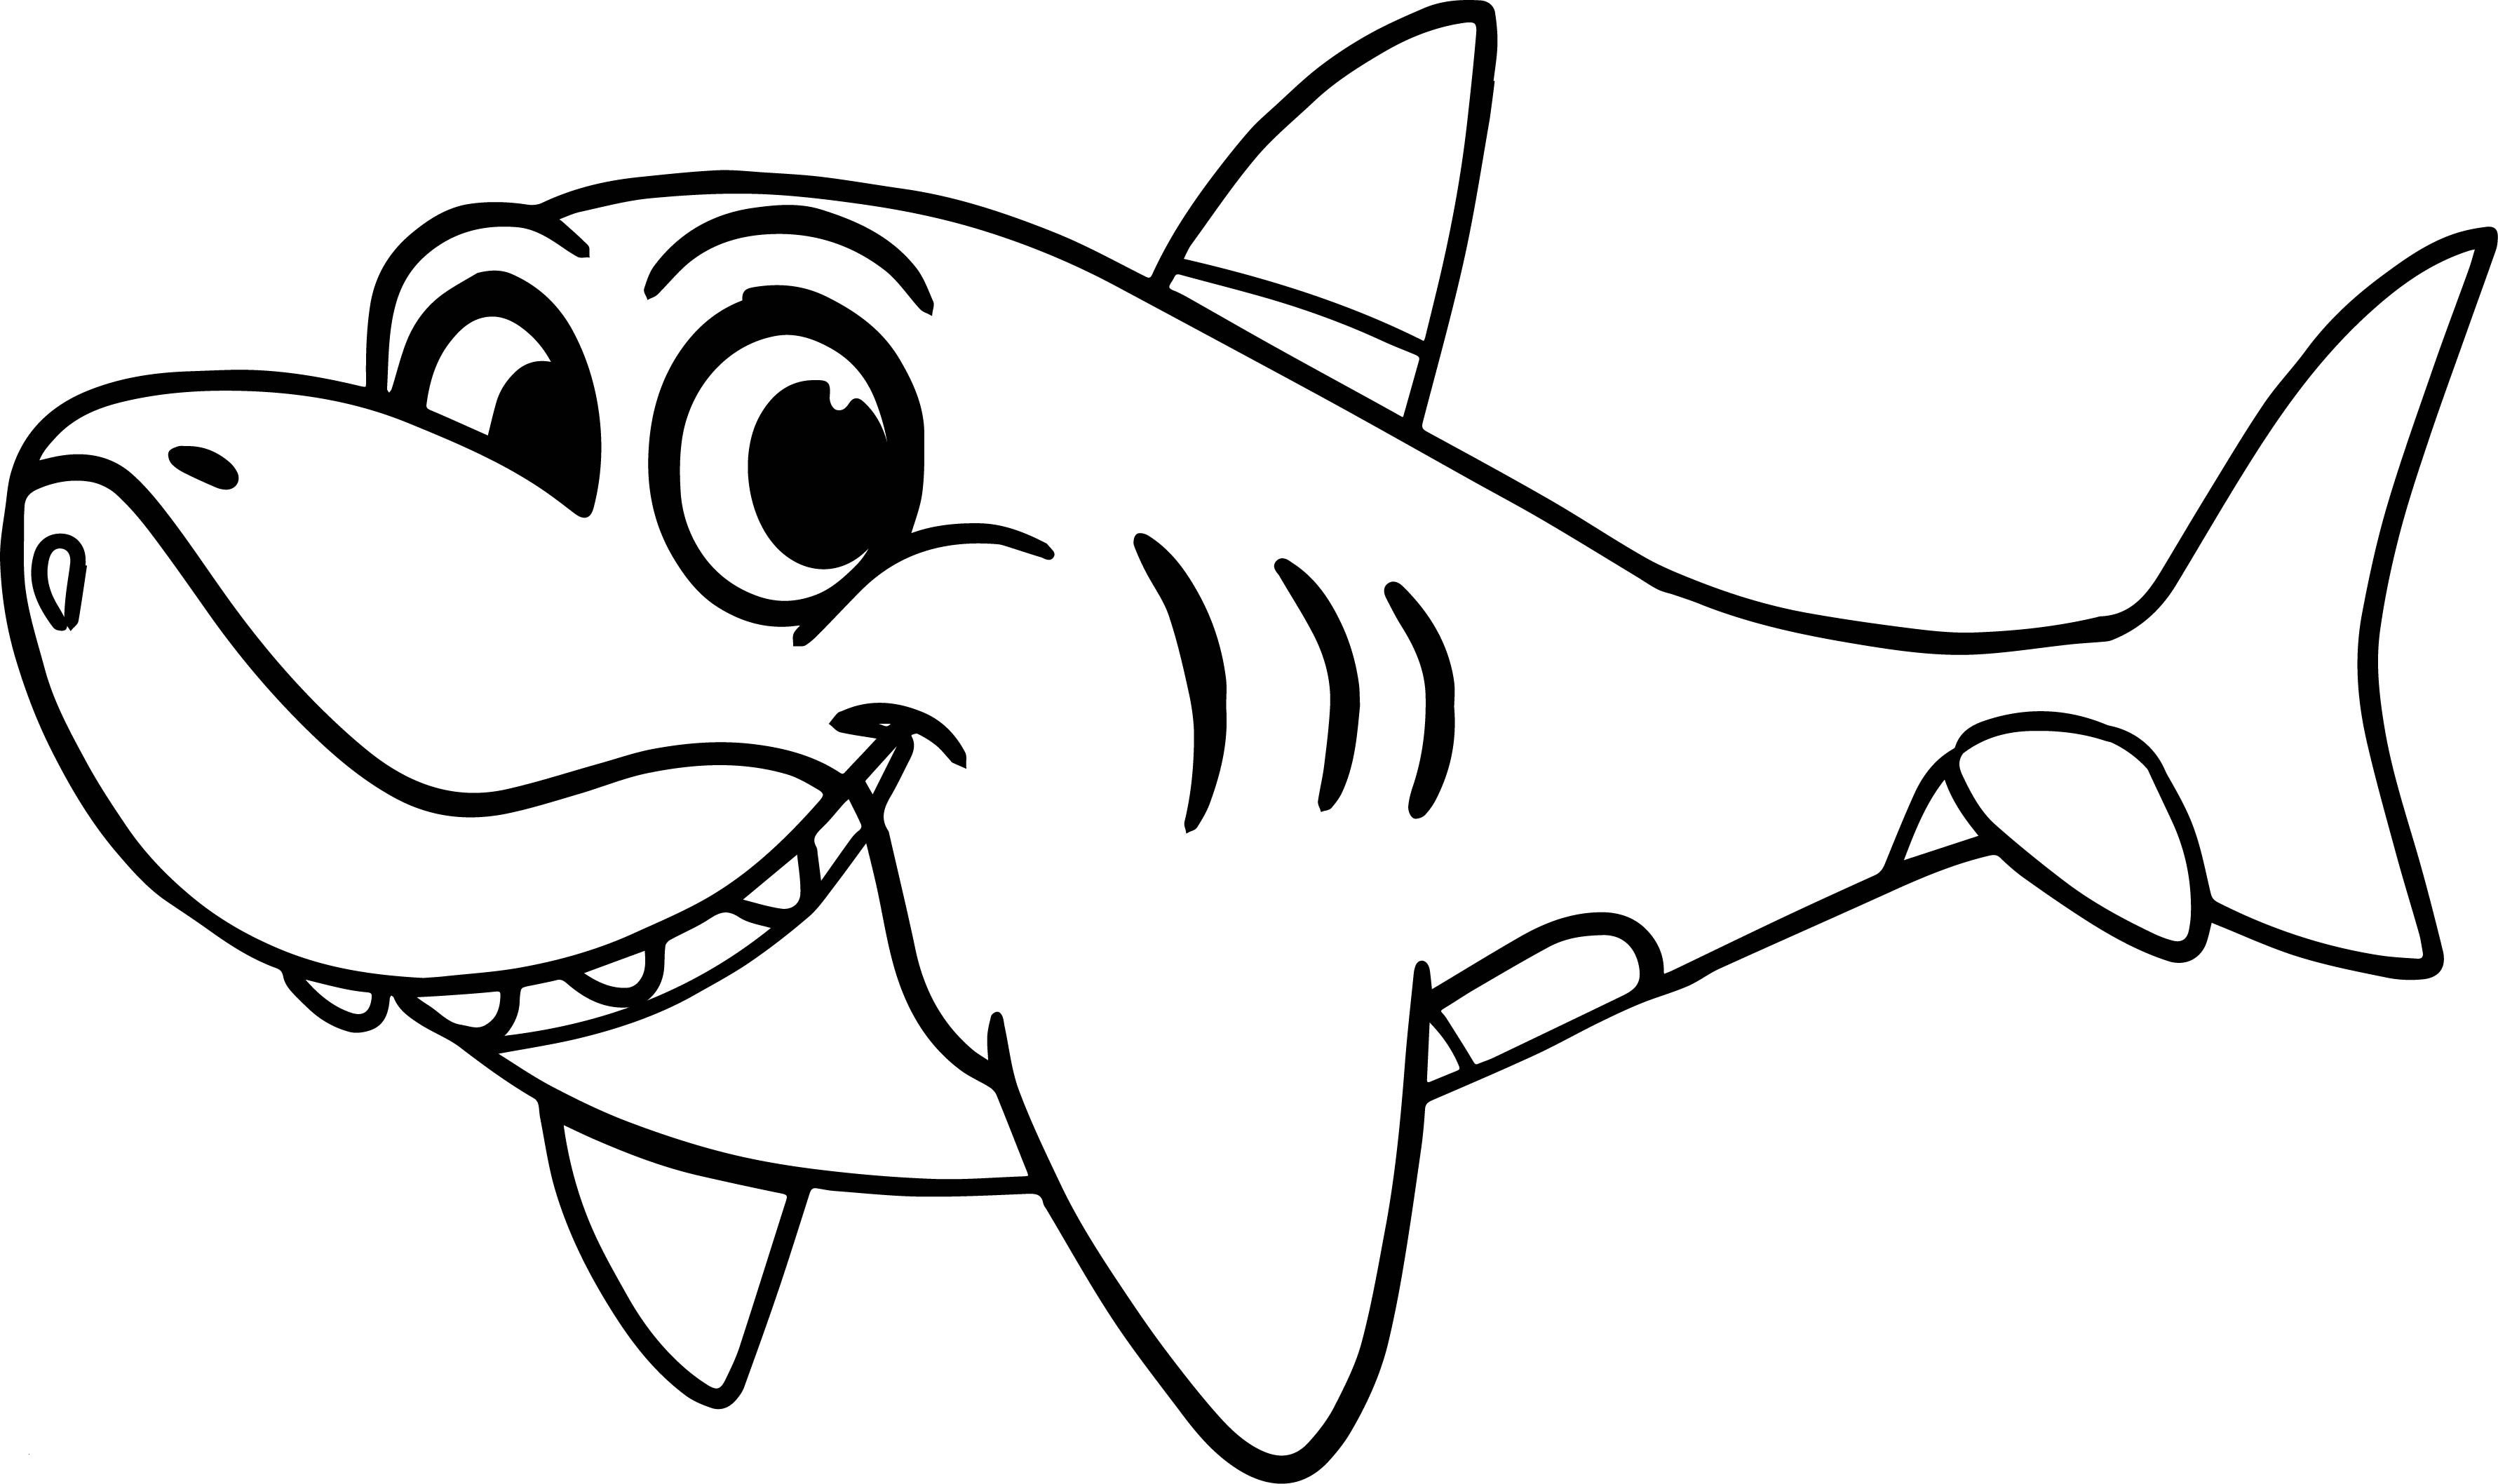 shark coloring pictures to print hammerhead shark coloring pages to print coloring to print shark pictures